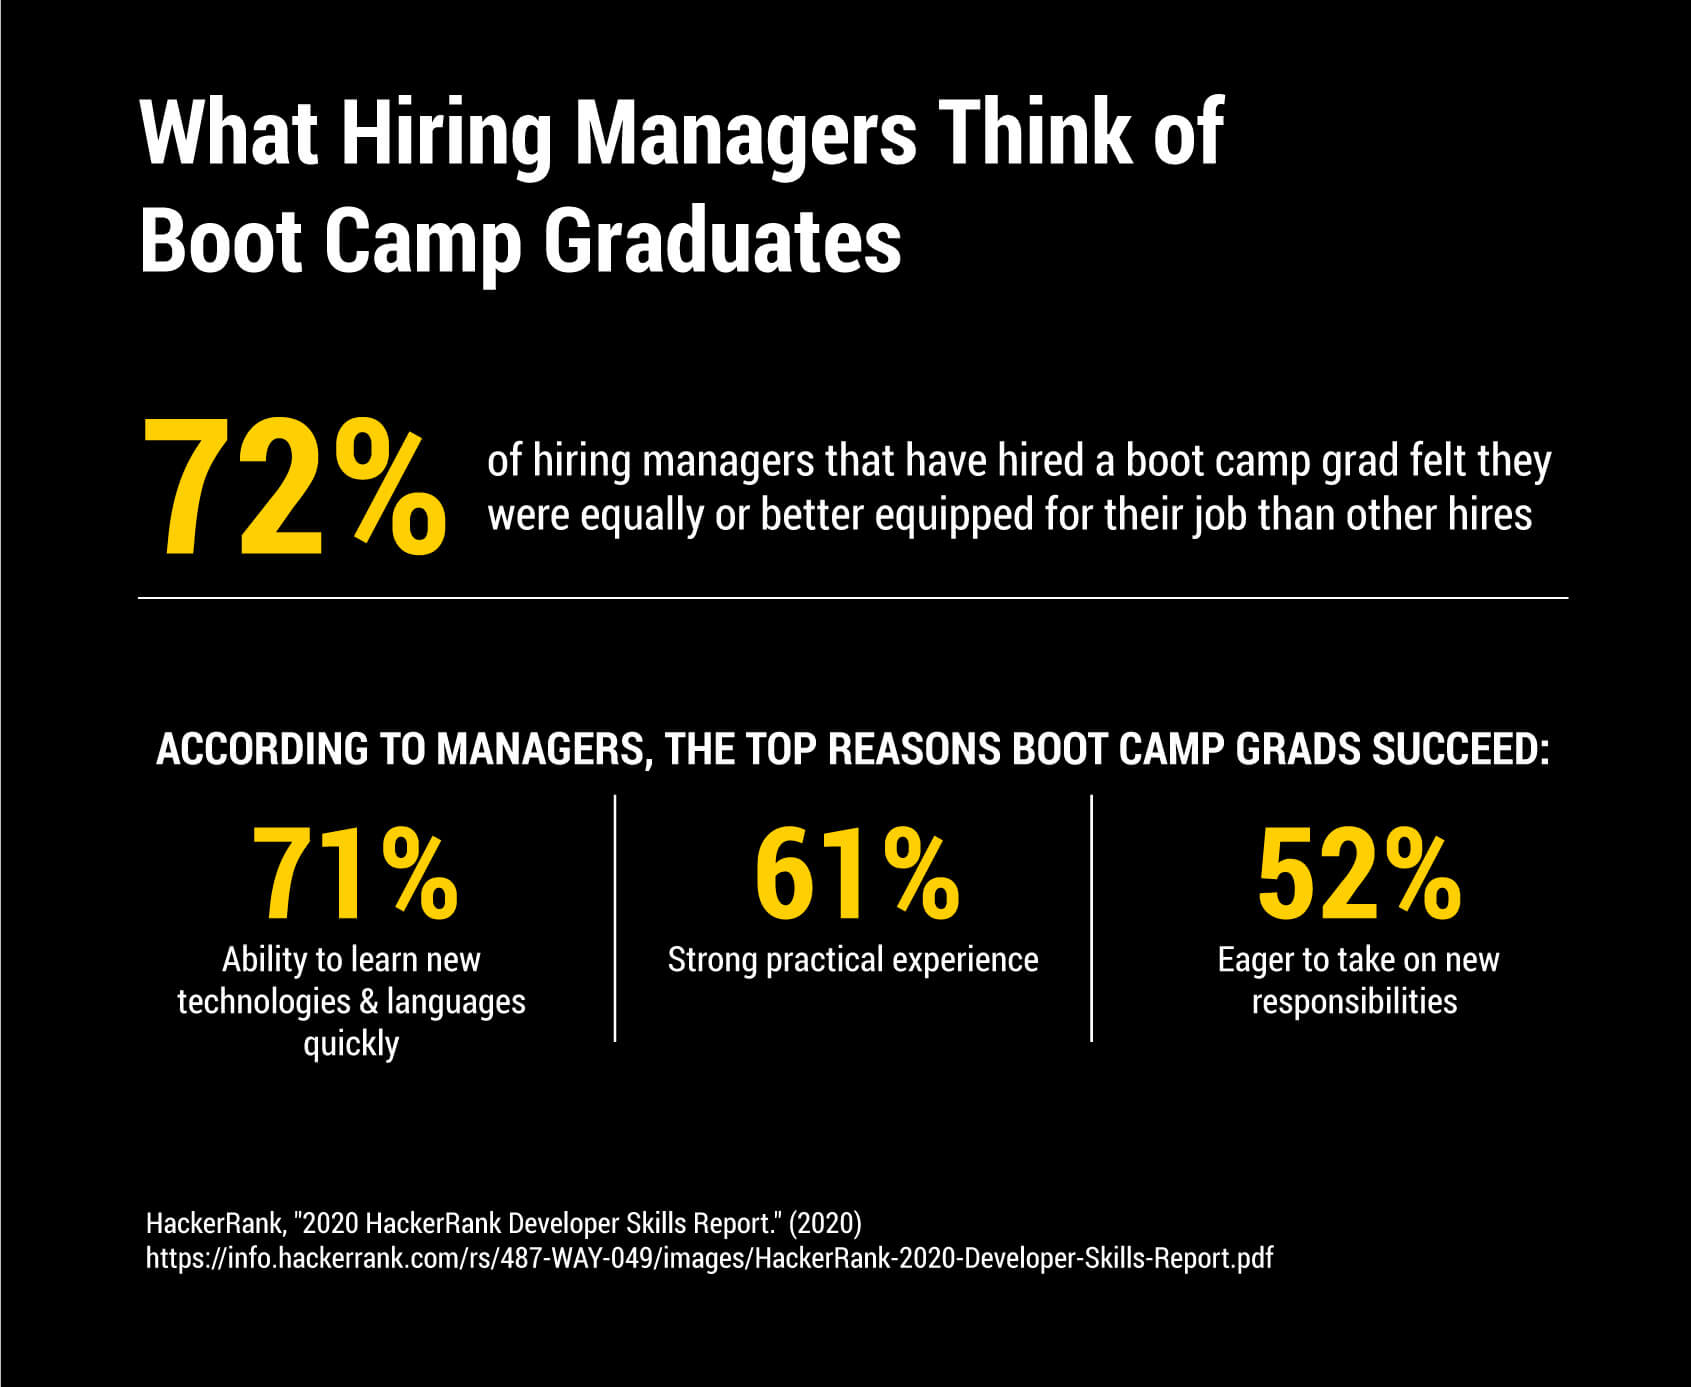 Statistics that show what hiring managers think of boot camp graduates